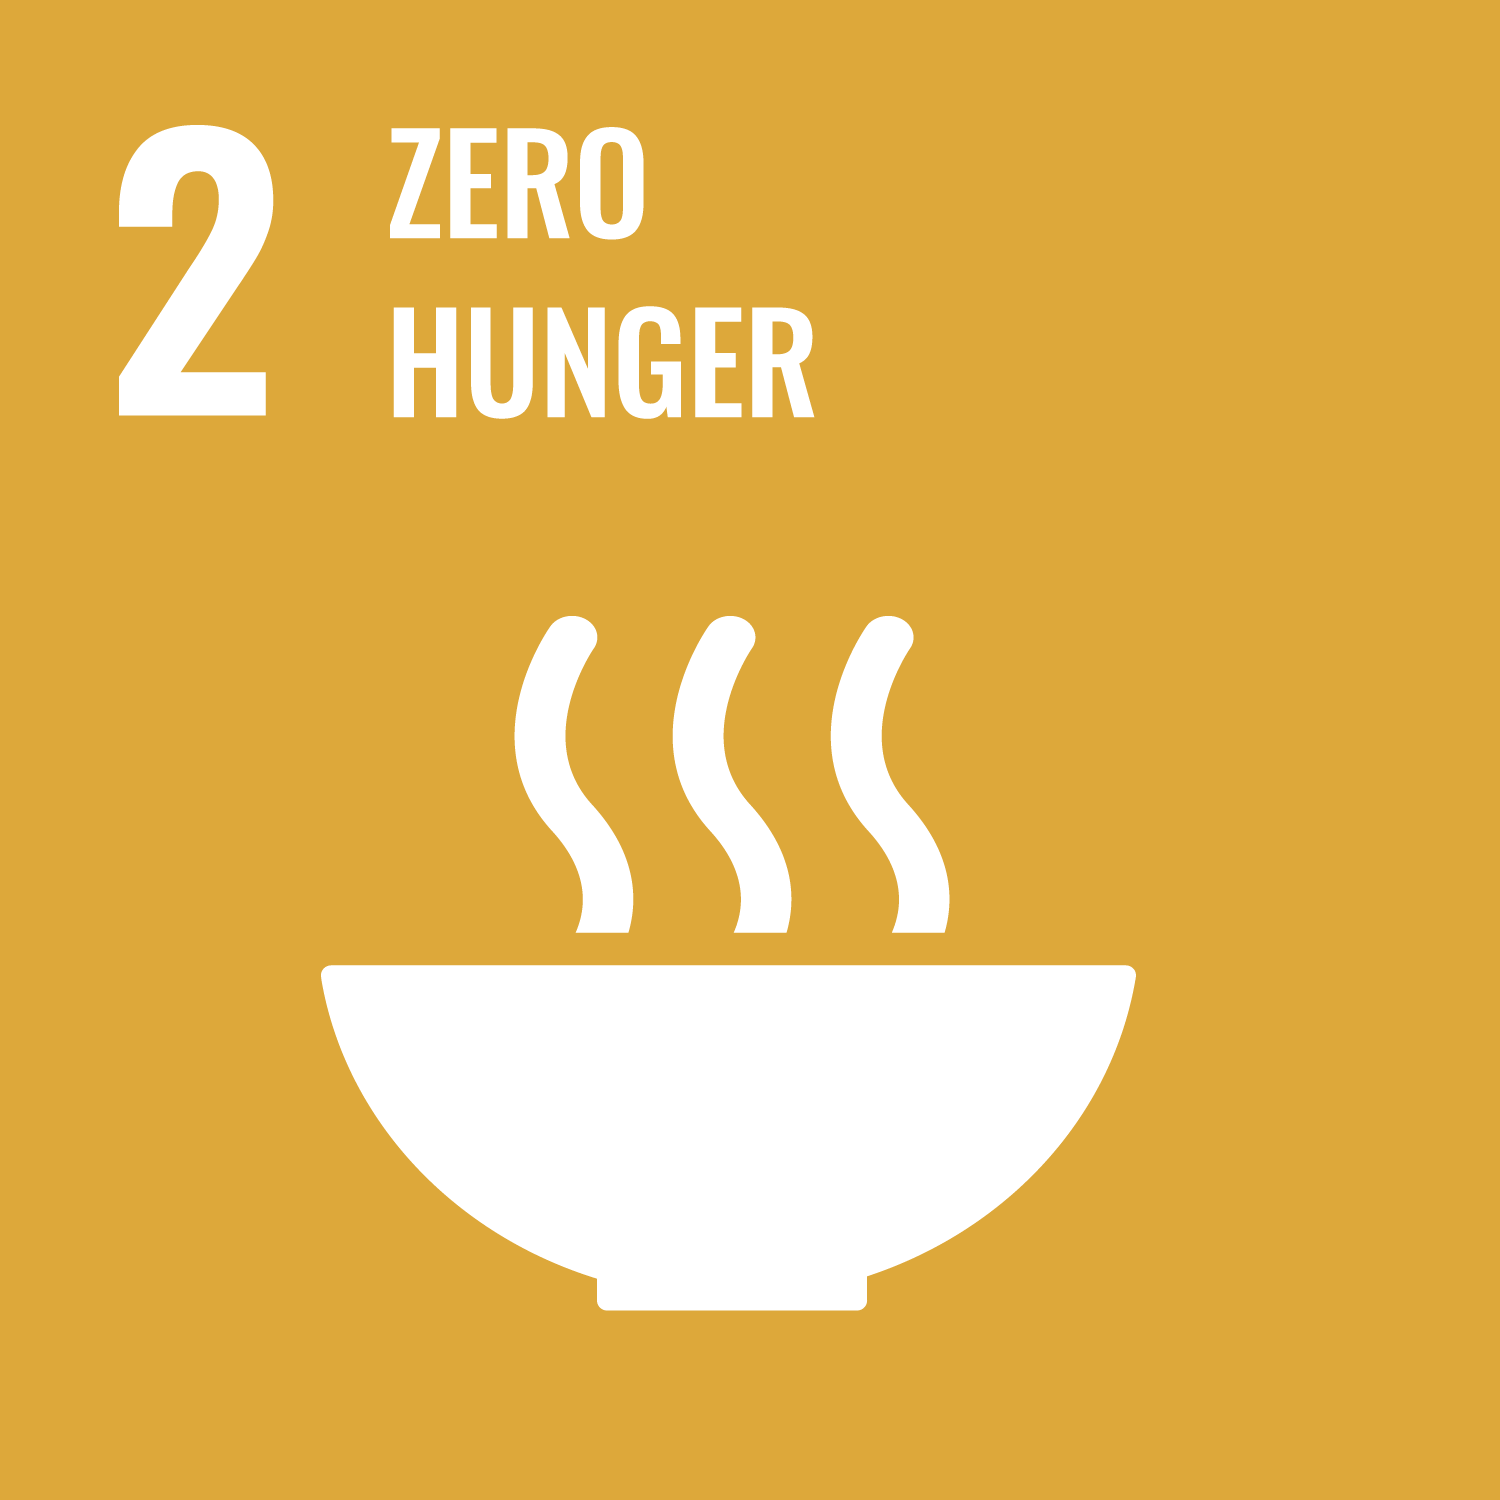 UN Sustainable Development Goal 2: No Hunger